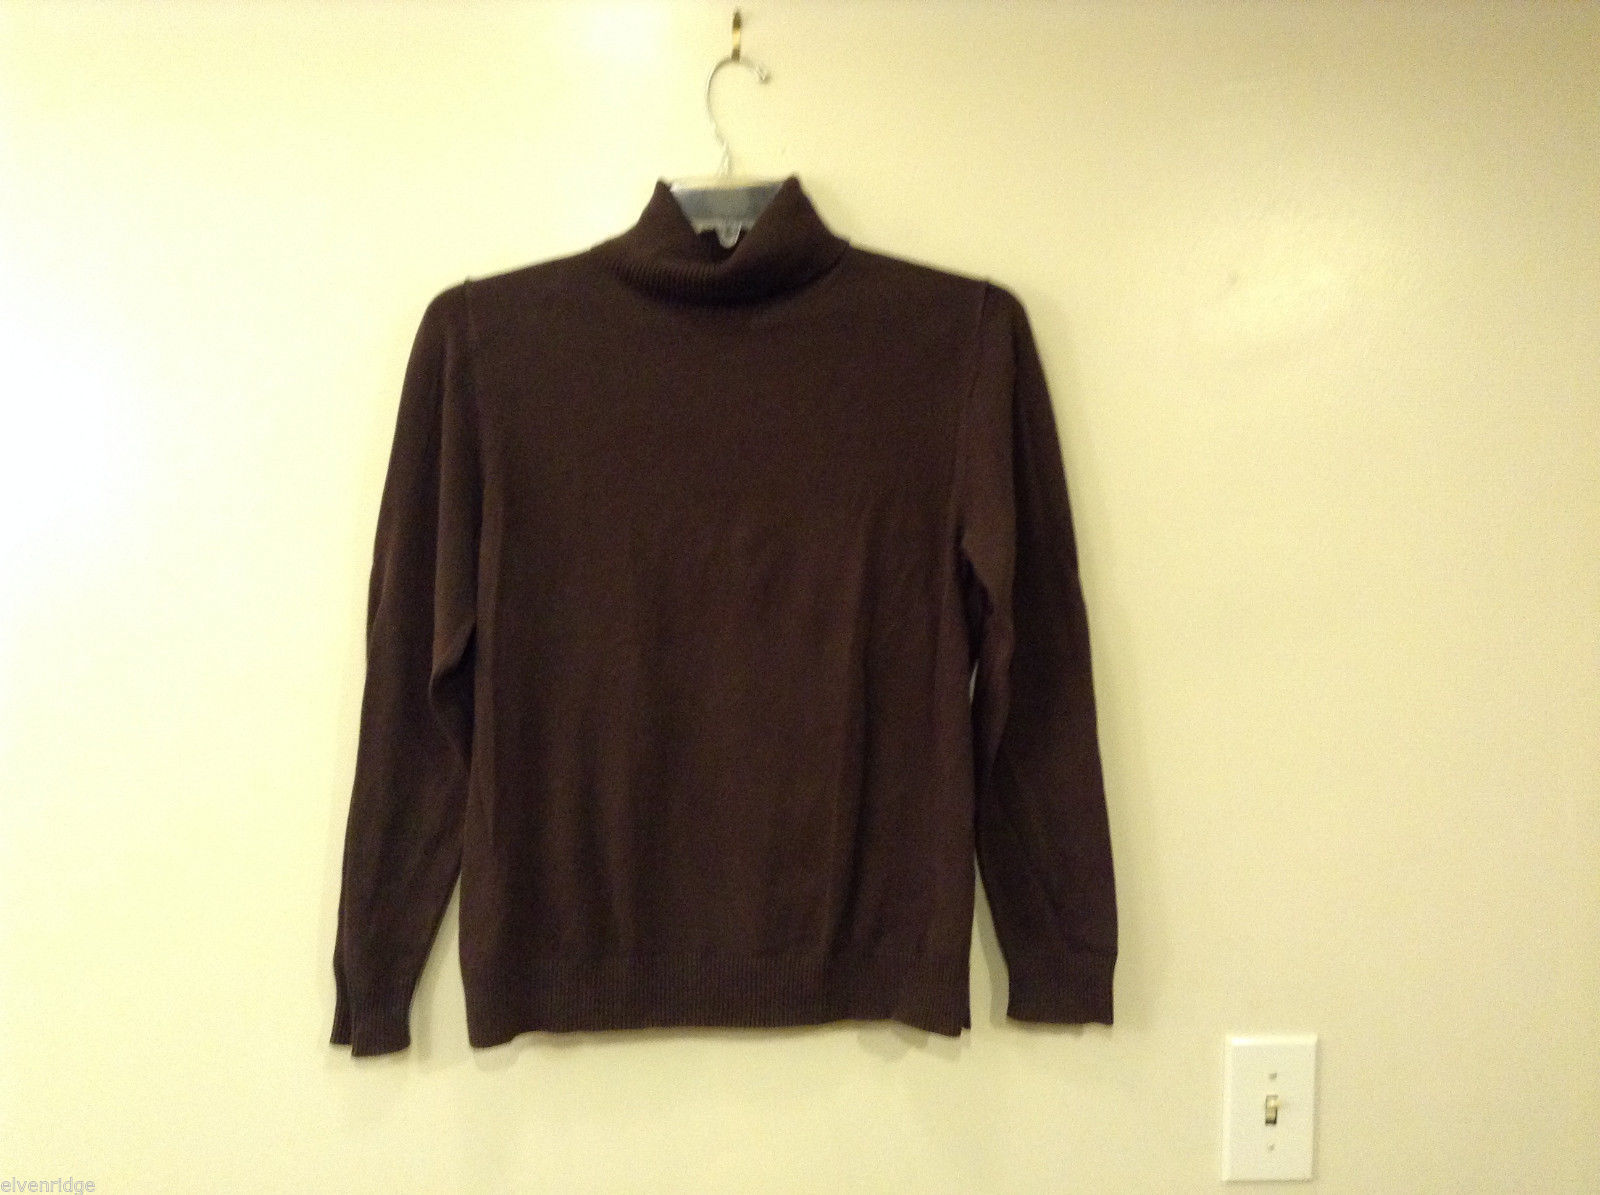 Lands' End Women's Size M 10-12 Turtleneck Sweater Chocolate Brown Ribbed Turtle